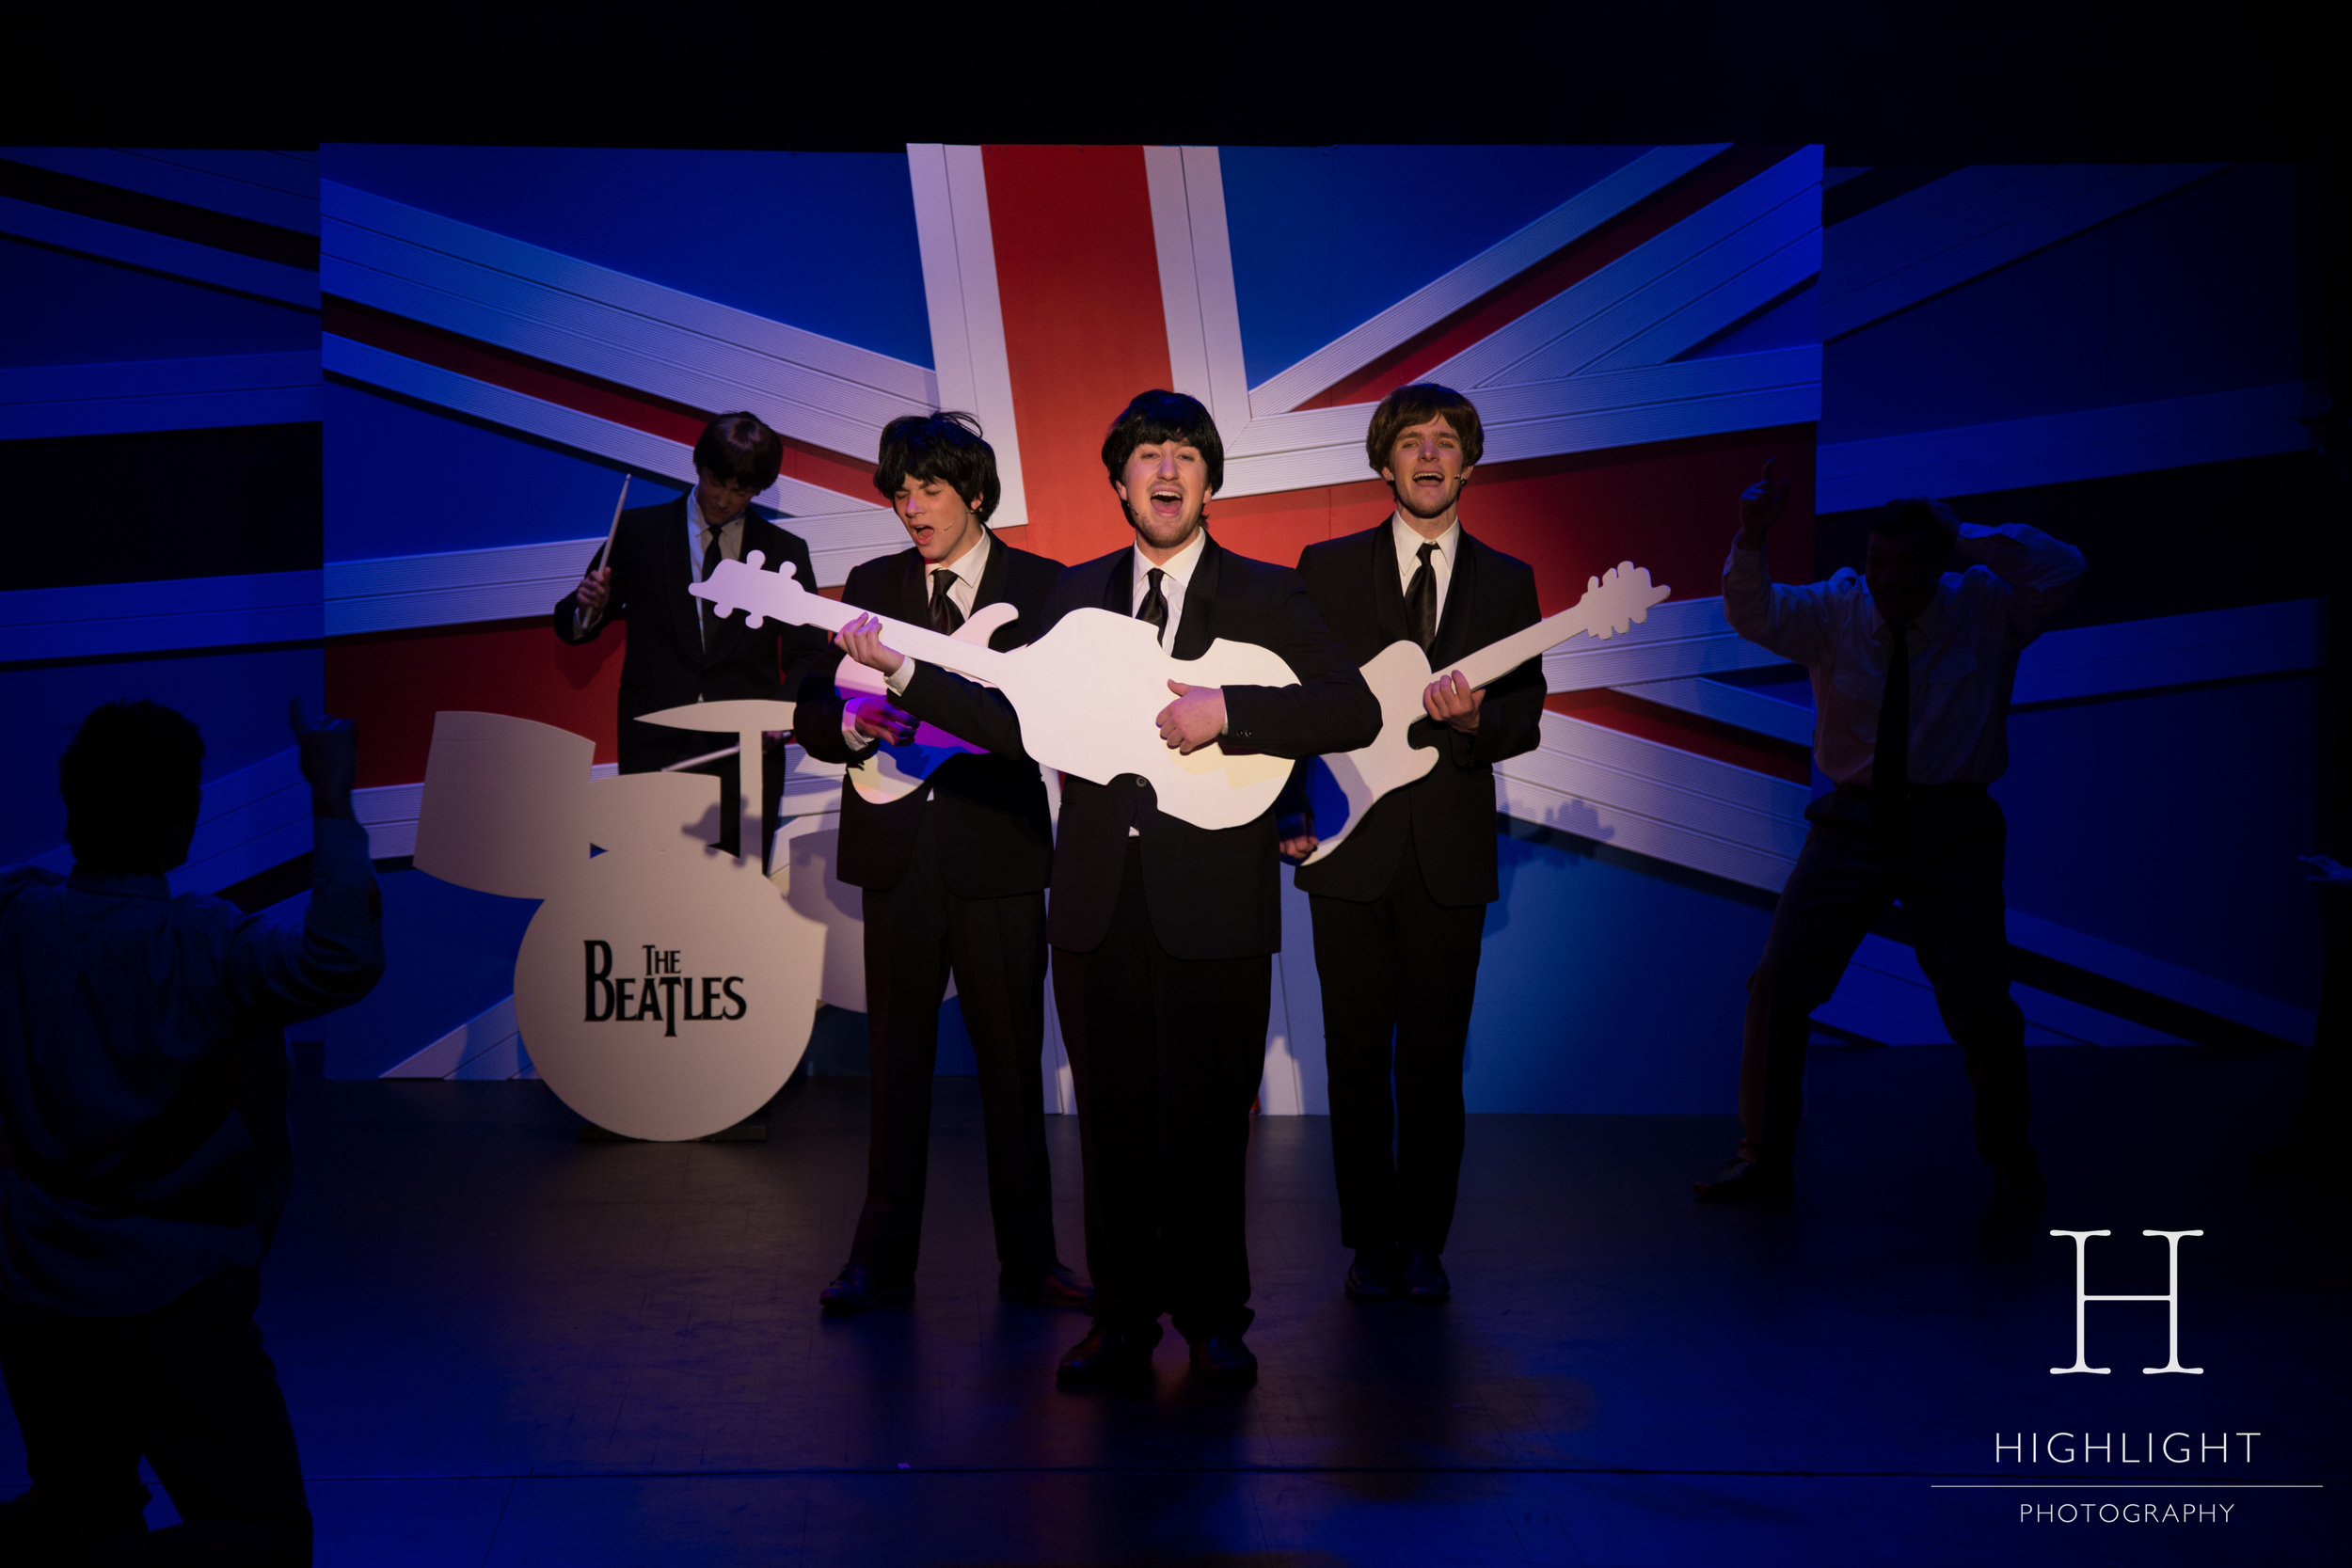 beatles_british_invasion_stage_show_highlight_photography1